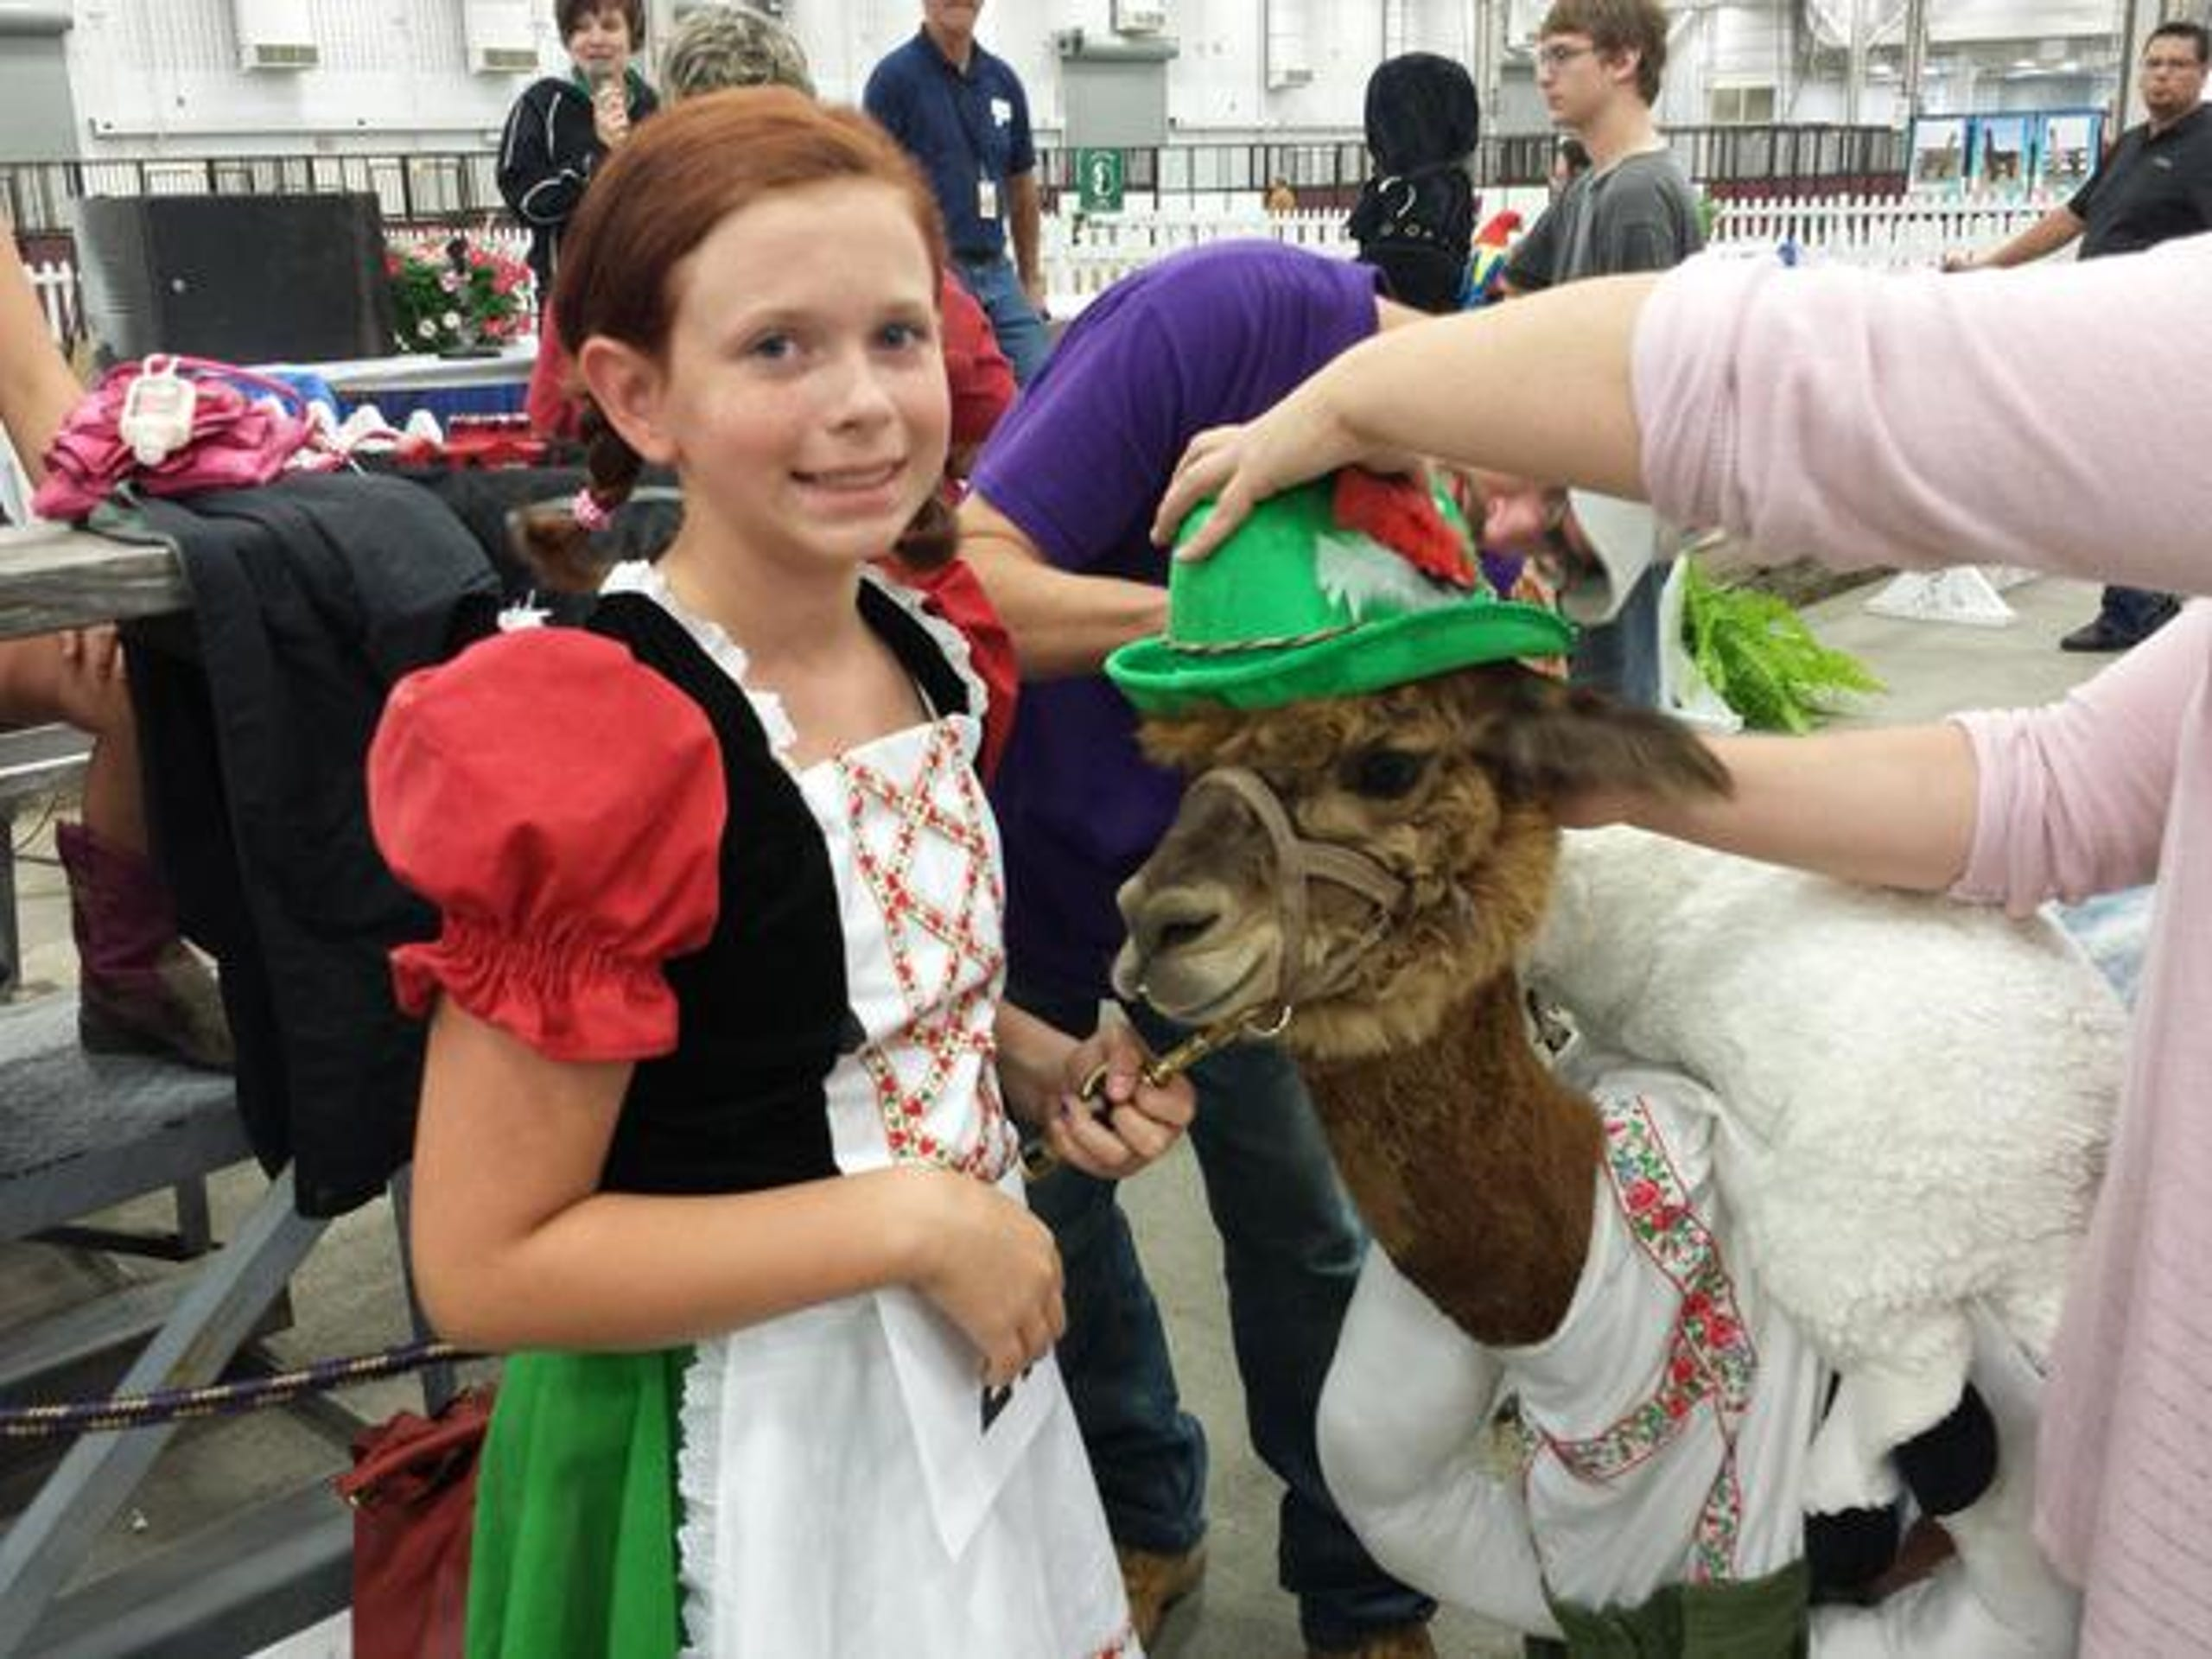 Llamas in costumes? It's an Indiana State Fair thing